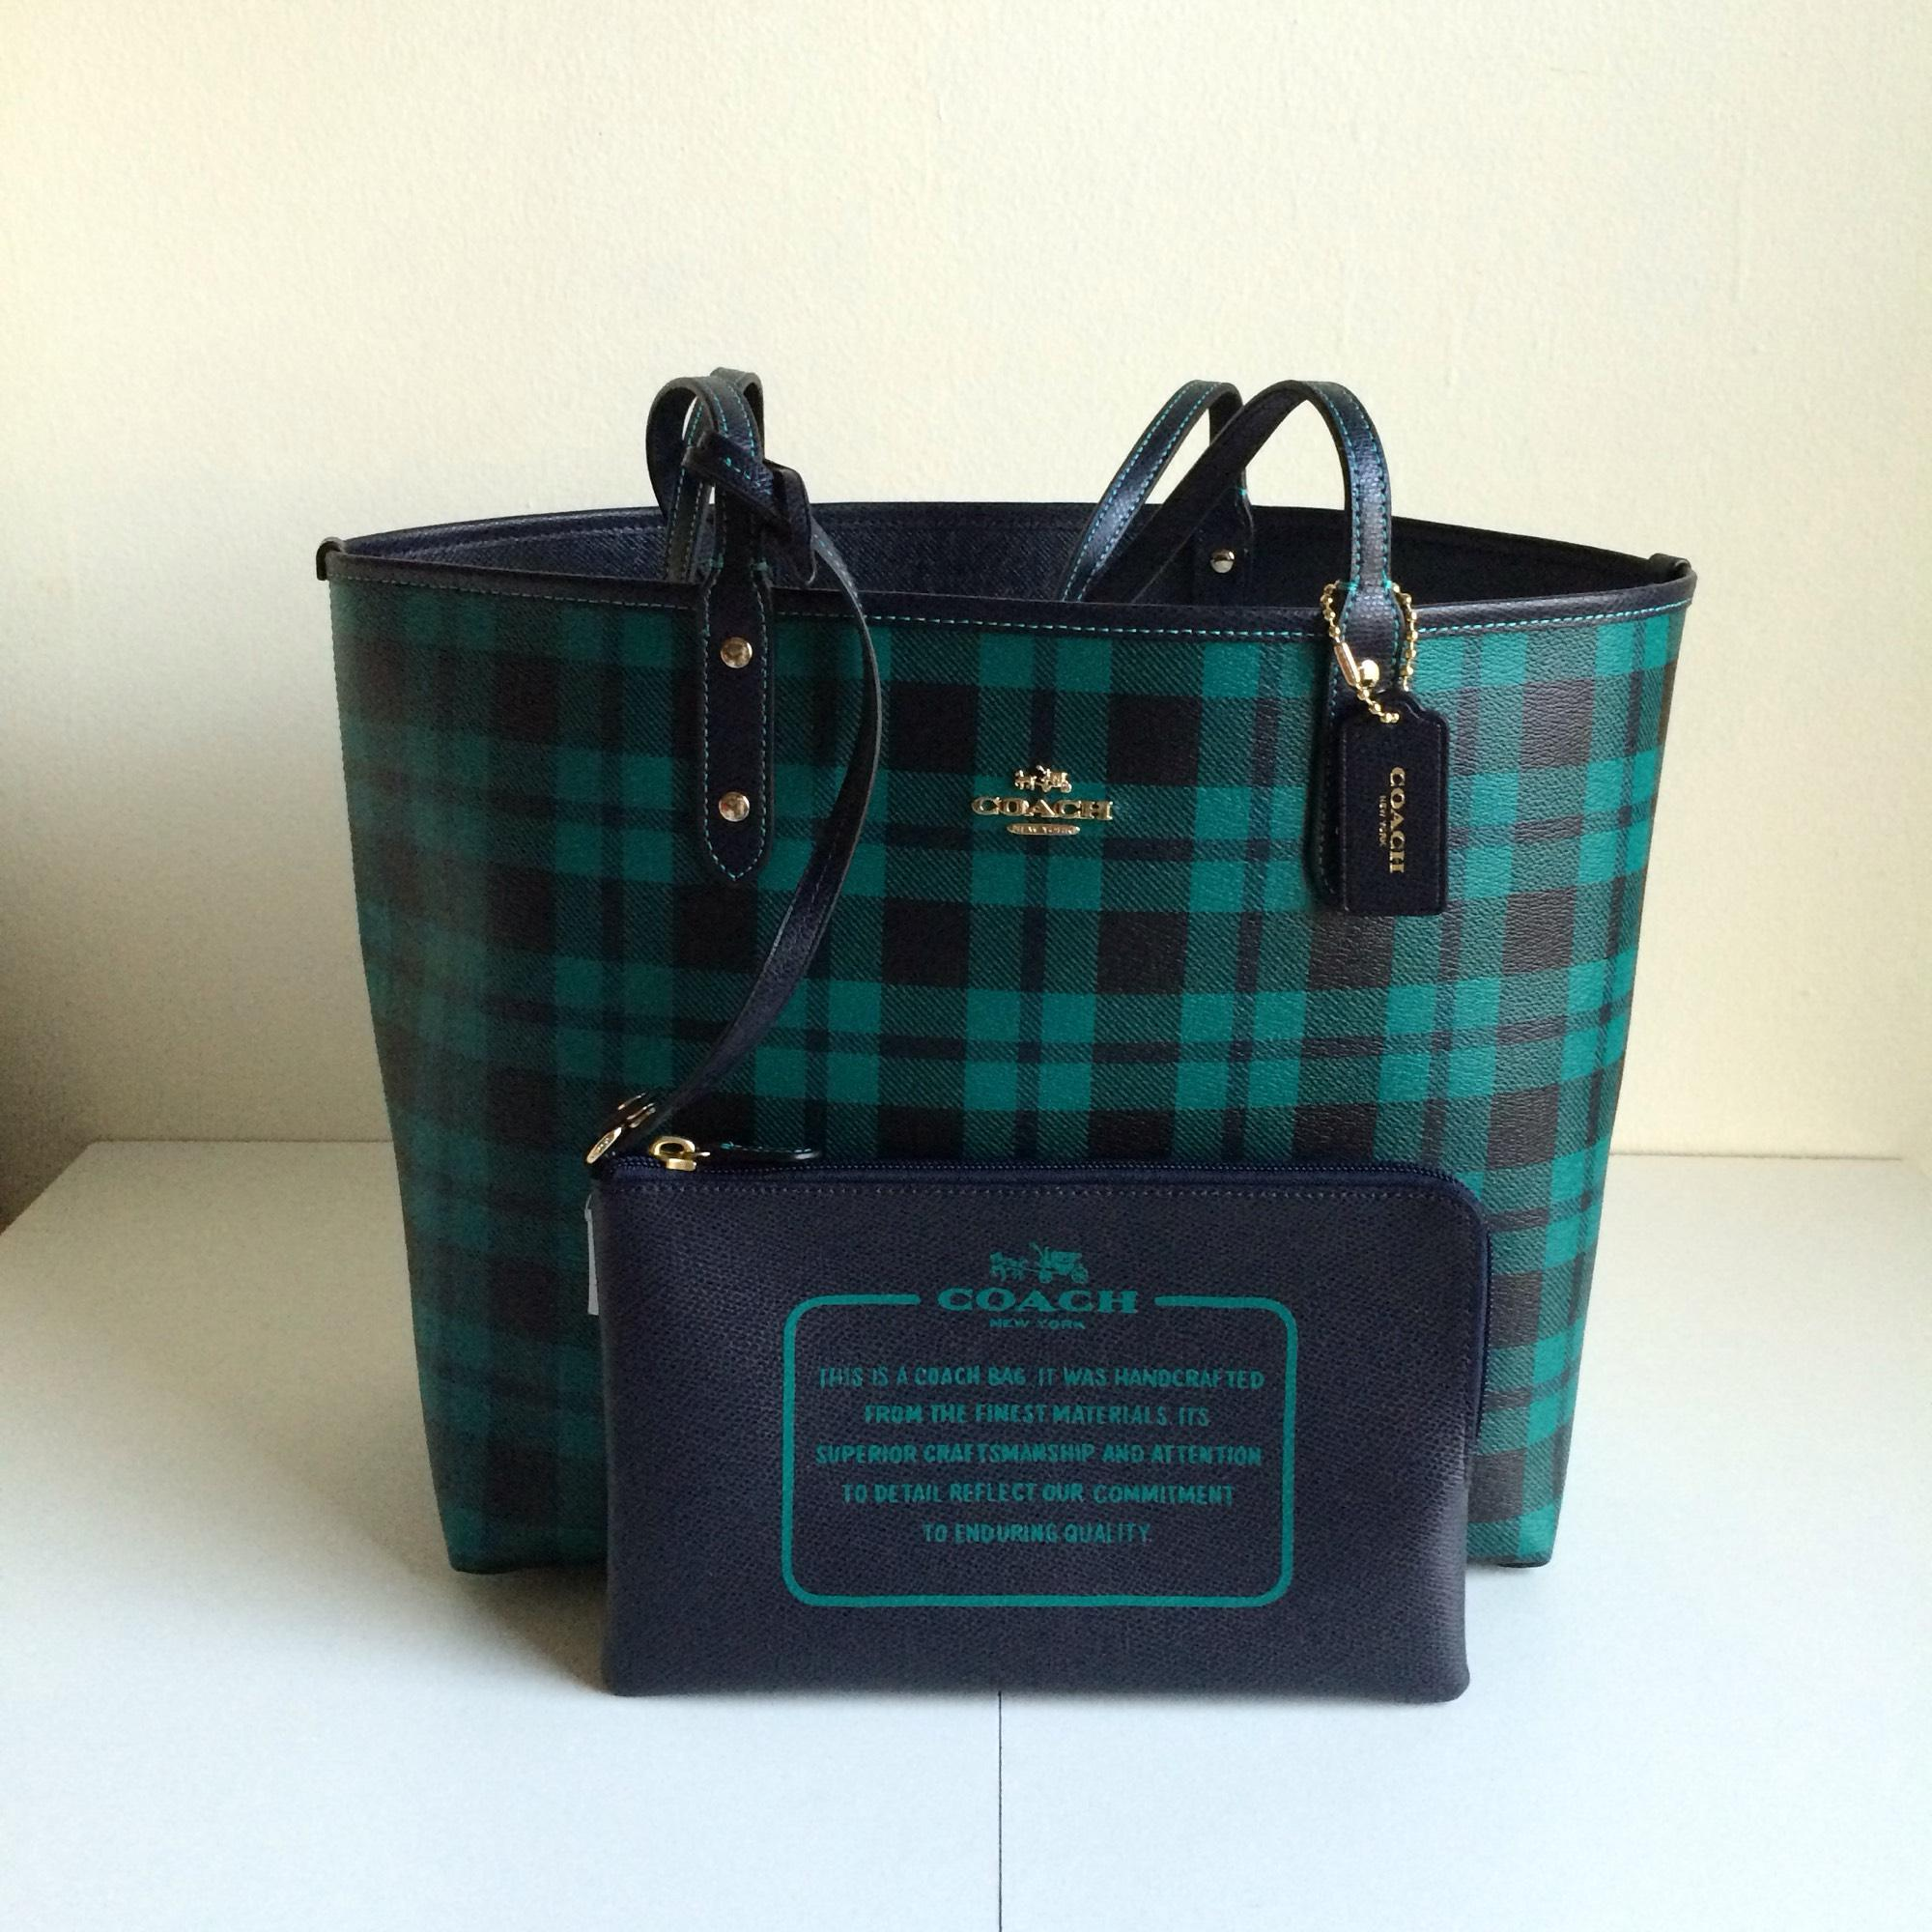 ... promo code for coach reversible coated canvas tote in green navy.  1234567 1a2e3 1c6b1 cafe391dbd3b5